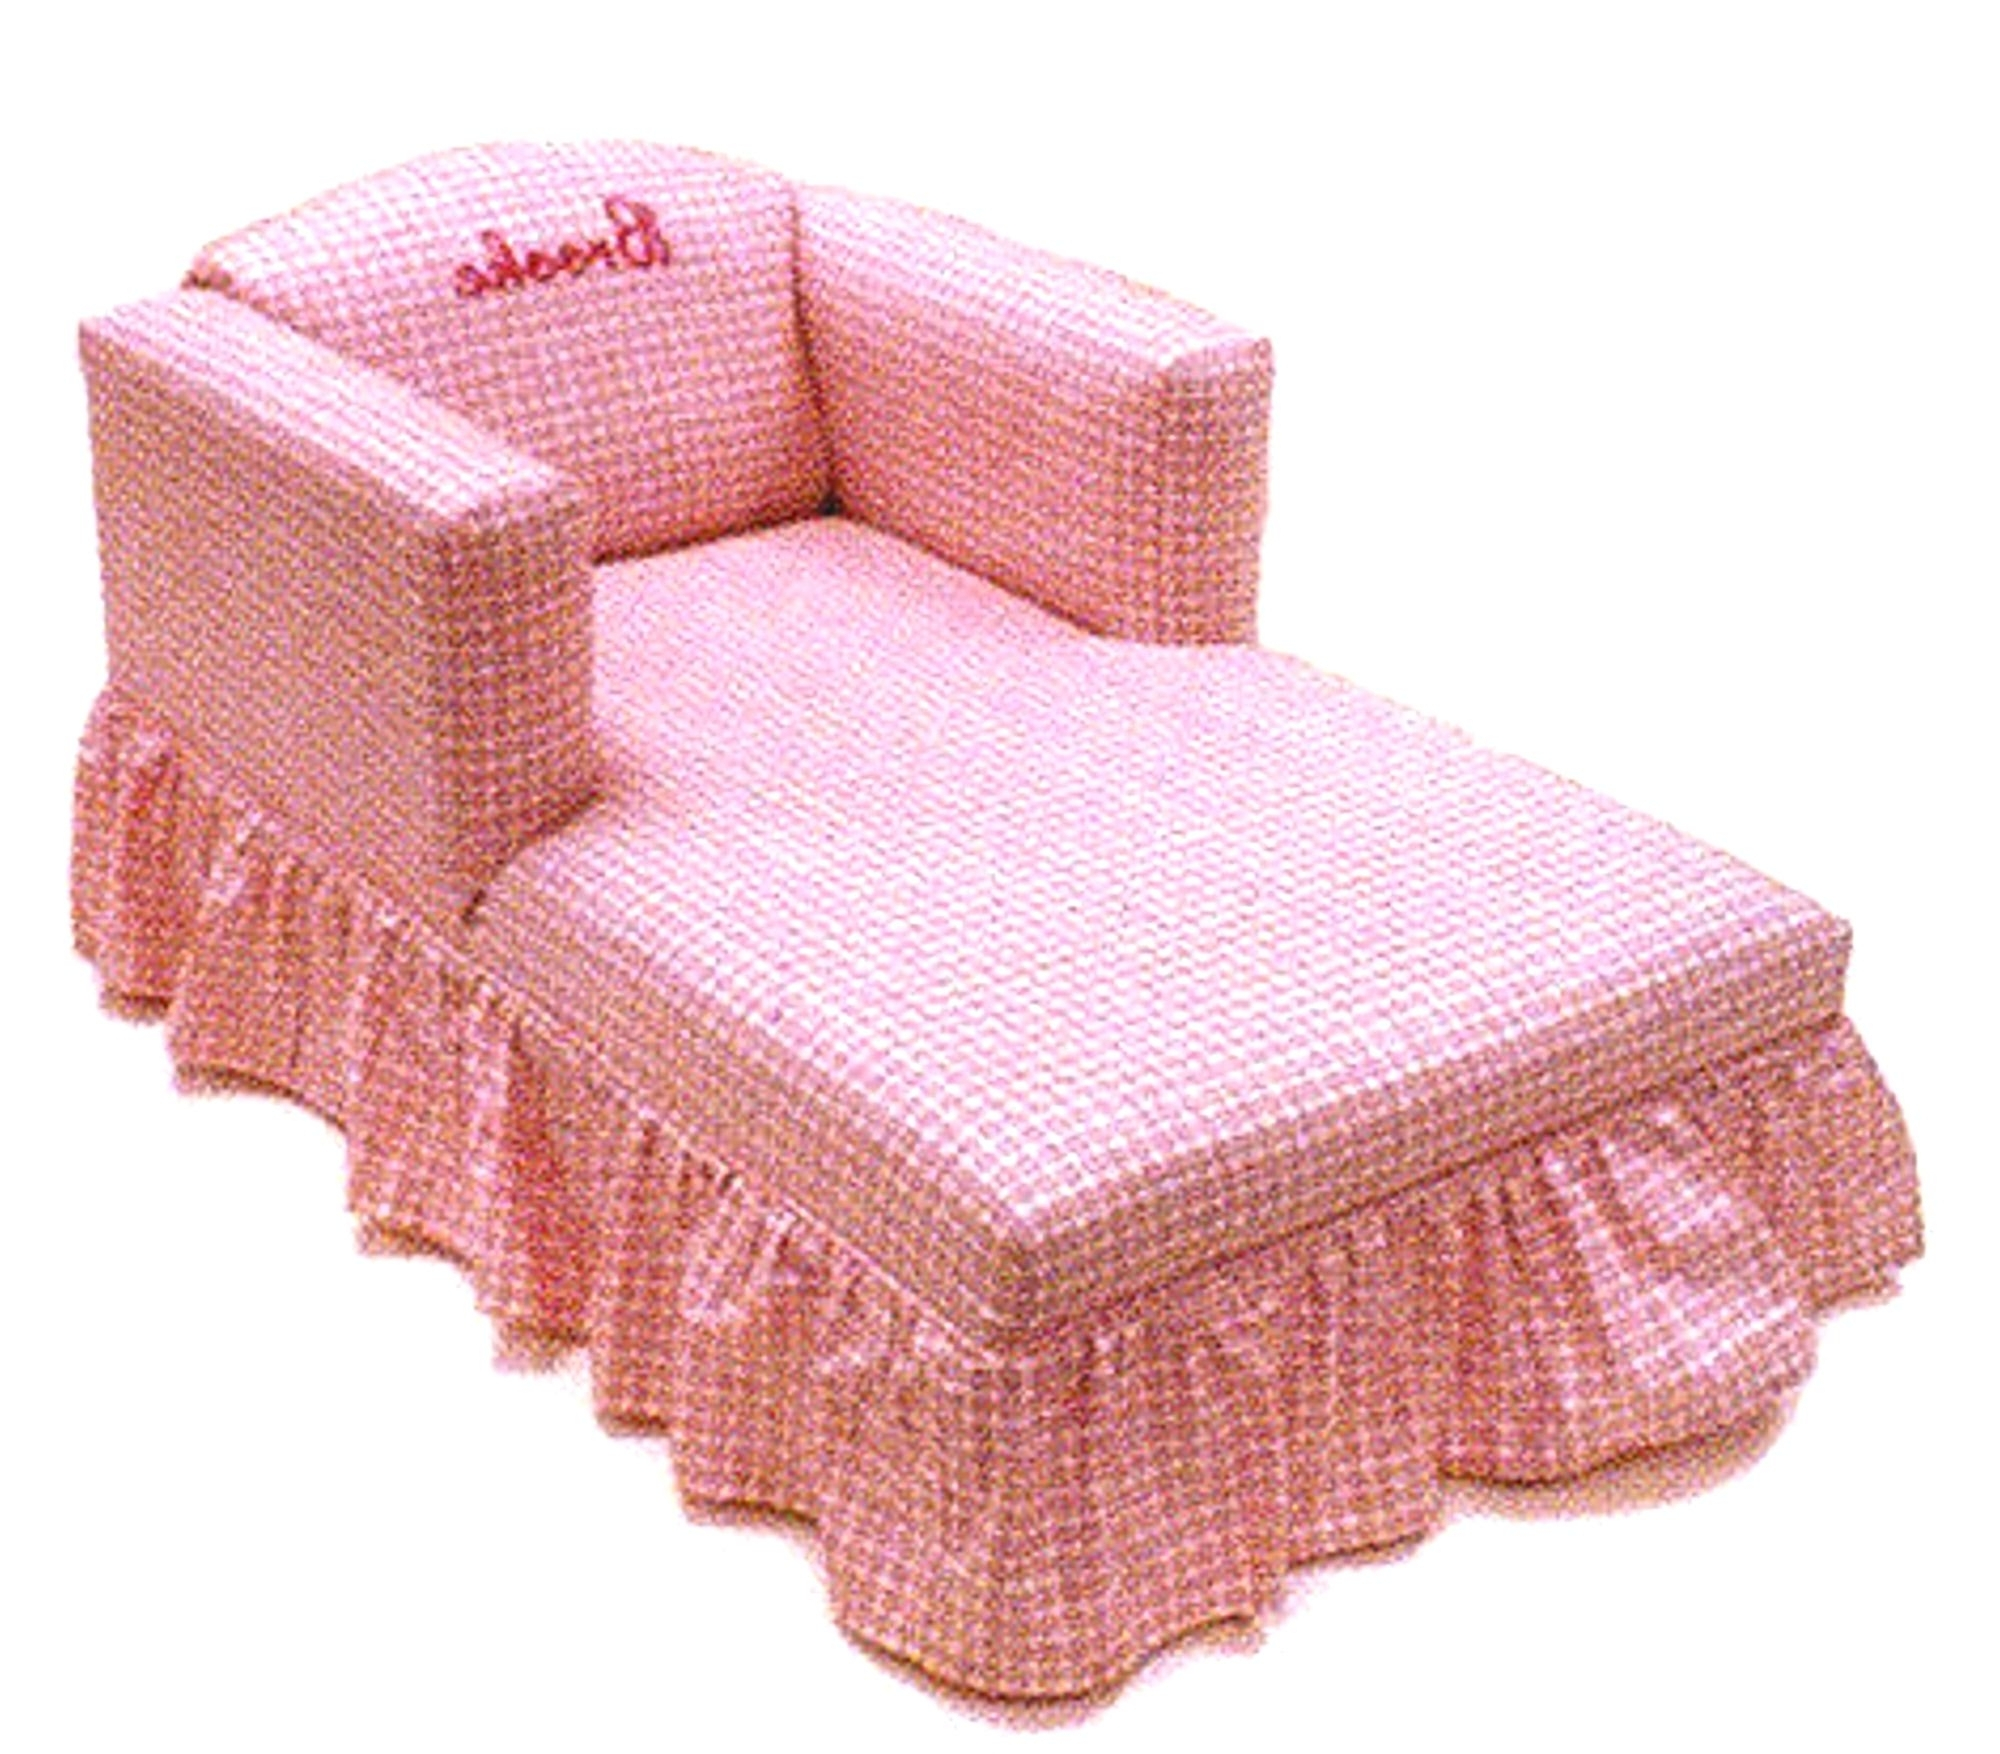 Pink Chaise Lounge Chair Hot Pink Chaise Lounge Chairs Kids Chaise Throughout Popular Hot Pink Chaise Lounge Chairs (View 5 of 15)